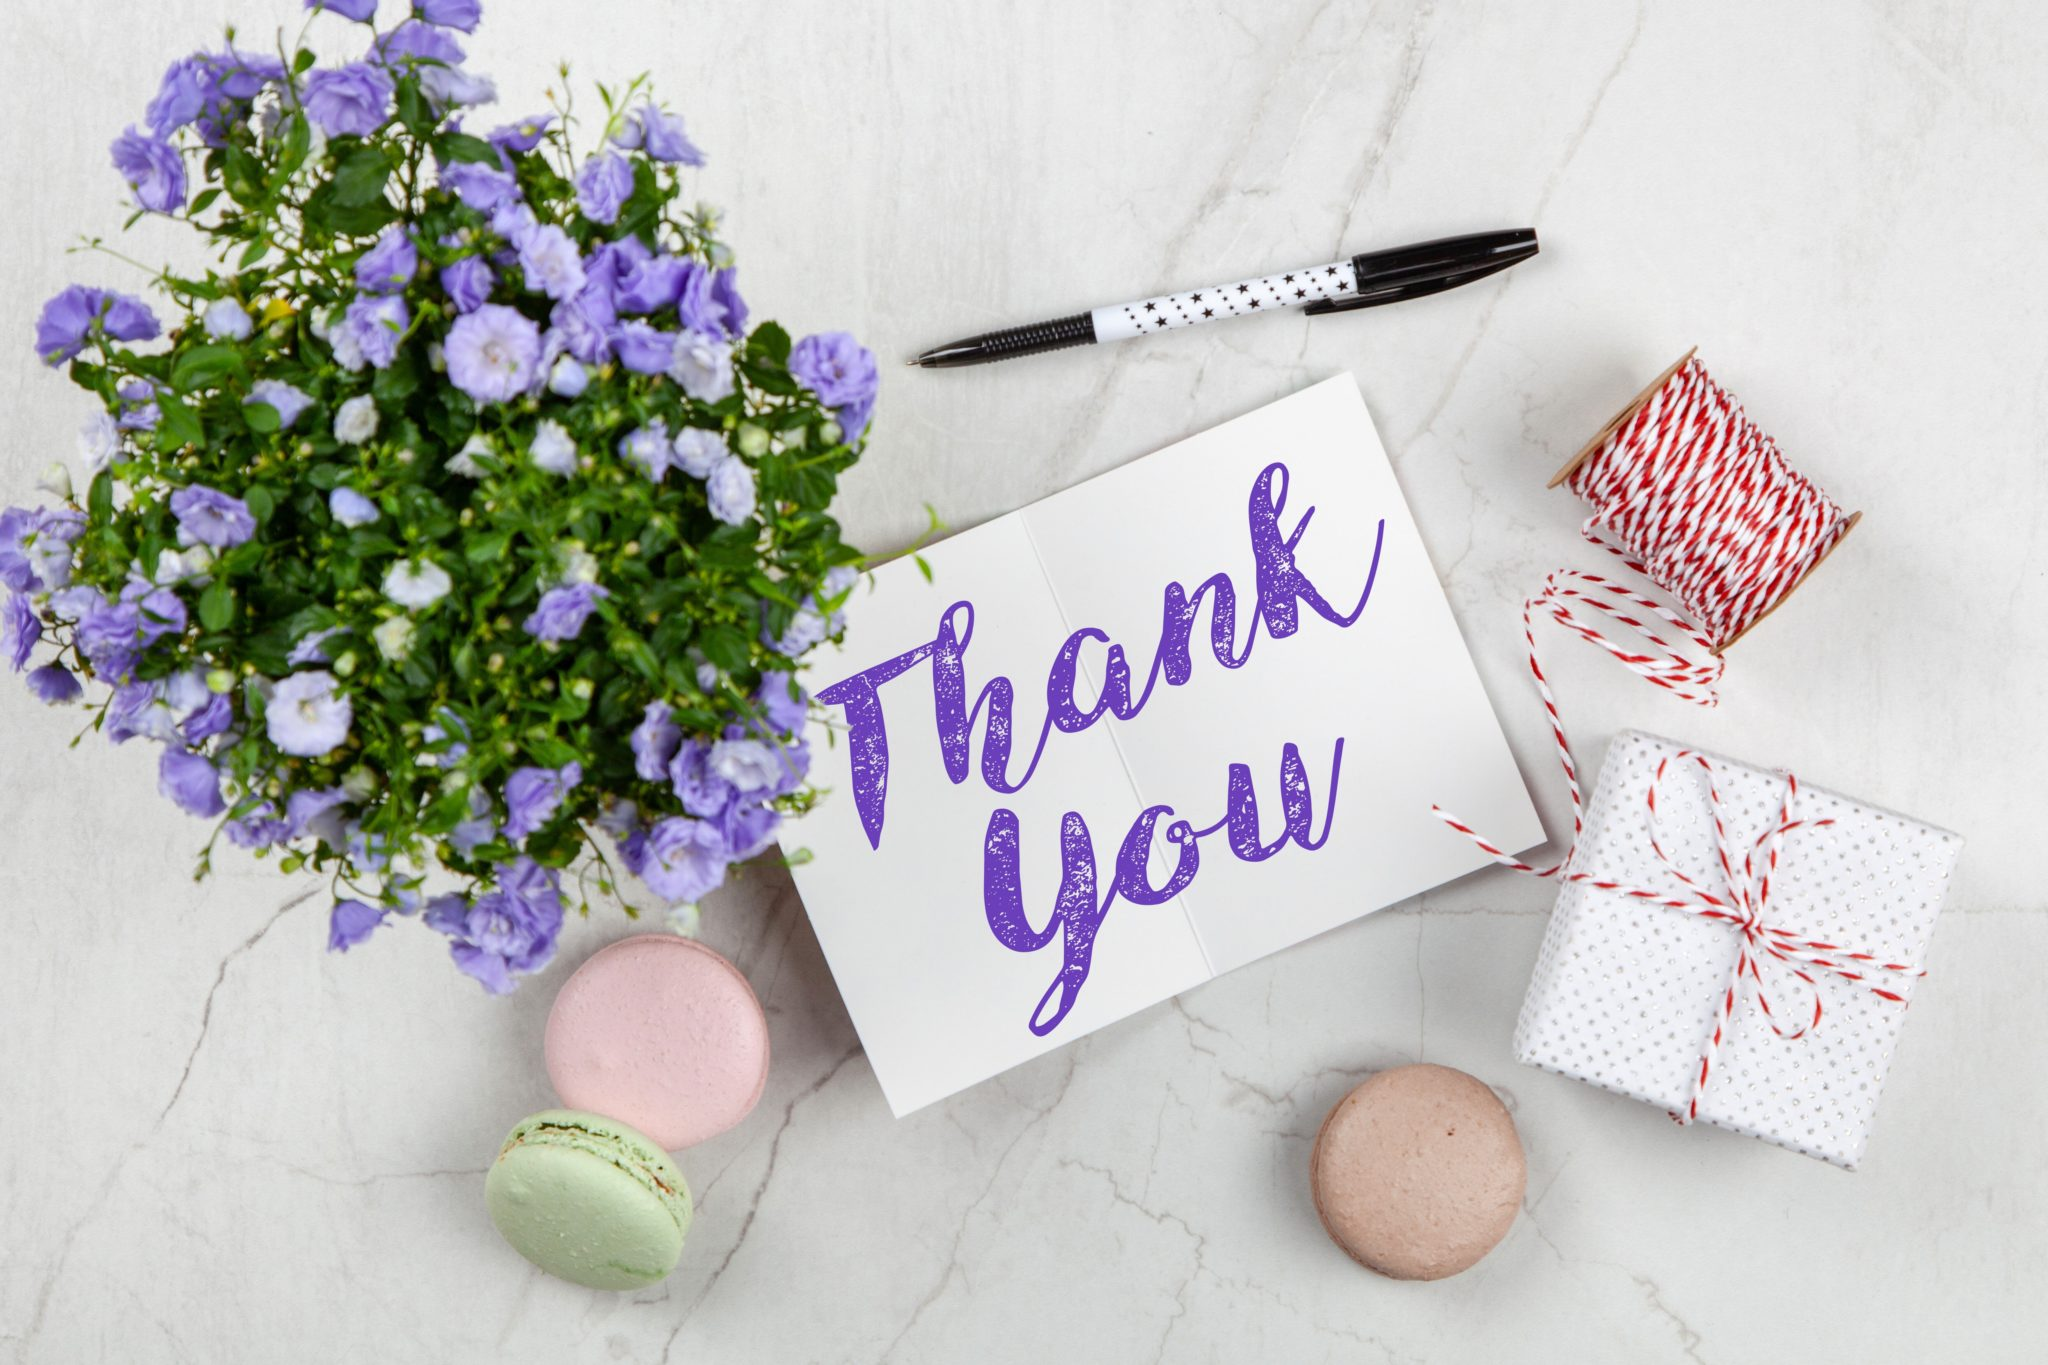 Purple flowers next to a thank you card